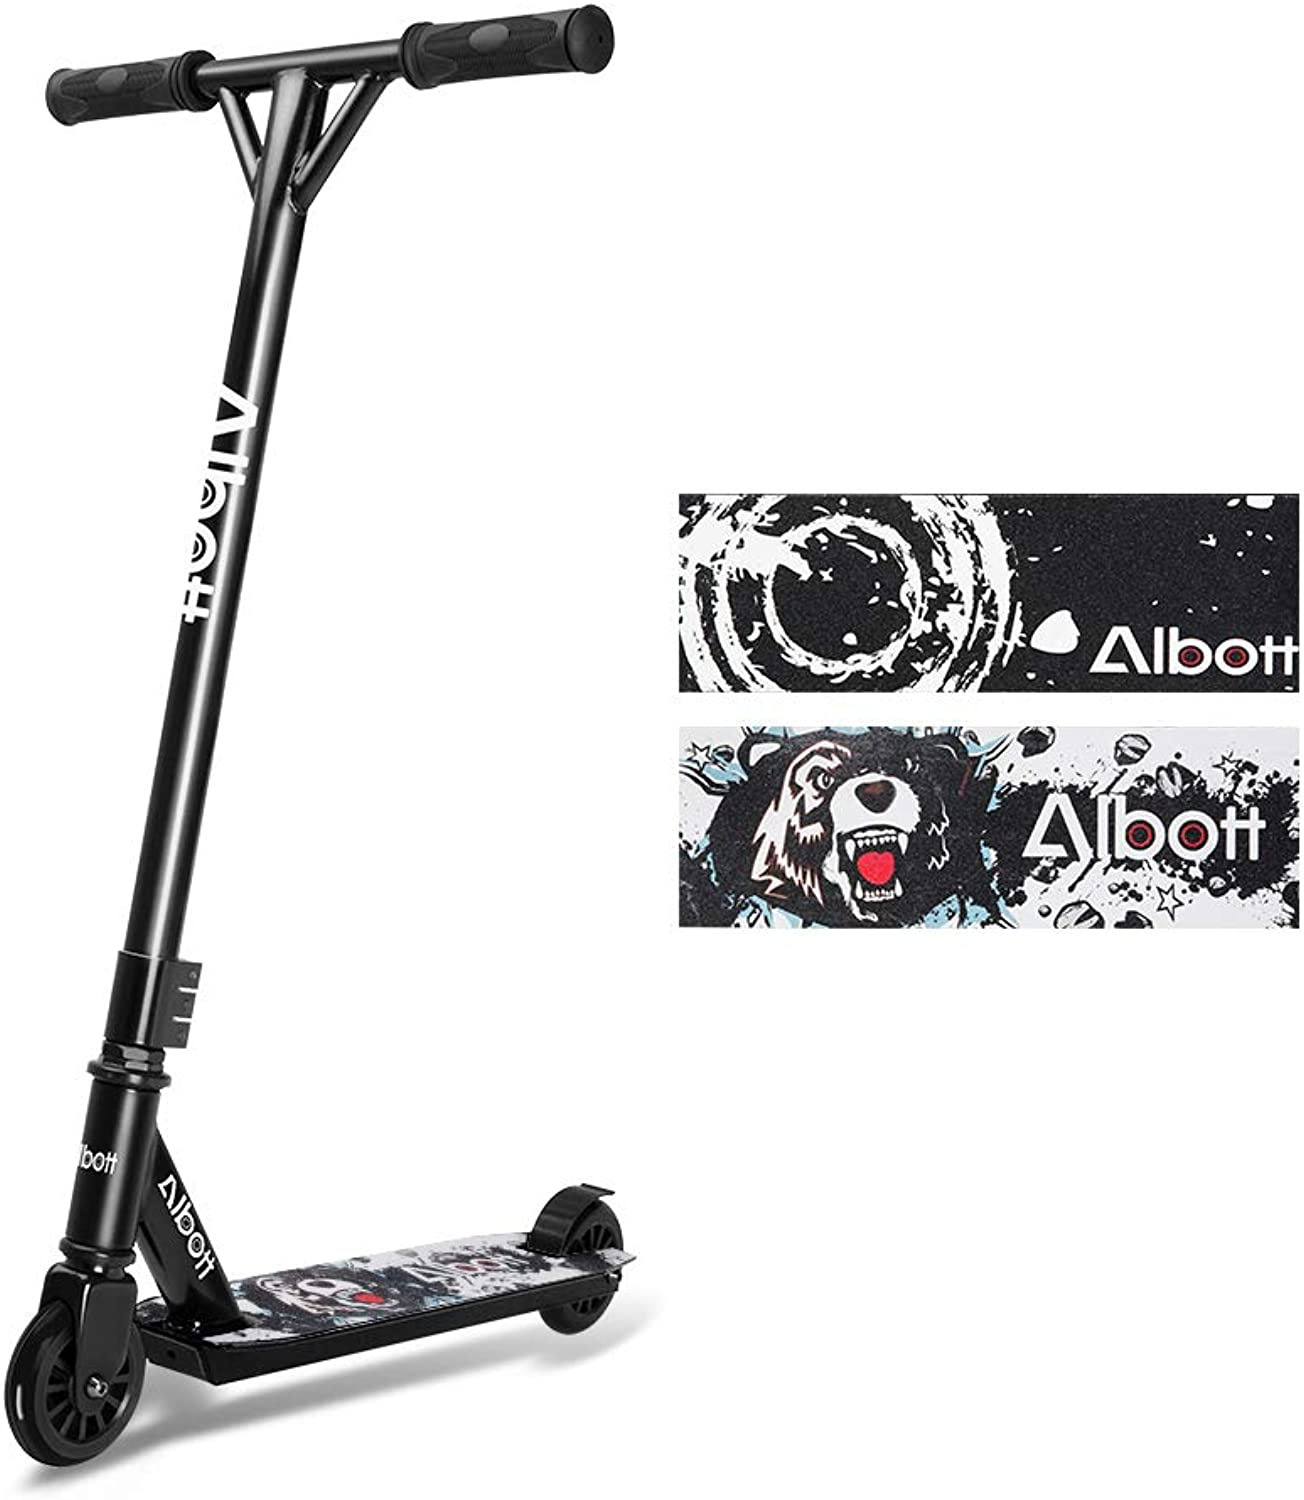 Albott Pro Scooters Stunt Scooter  Complete Trick Scooters Beginner Freestyle Sports Kick Scooter with Fixed Bar for Age 8+ Kids,Boys,Teens,Adults